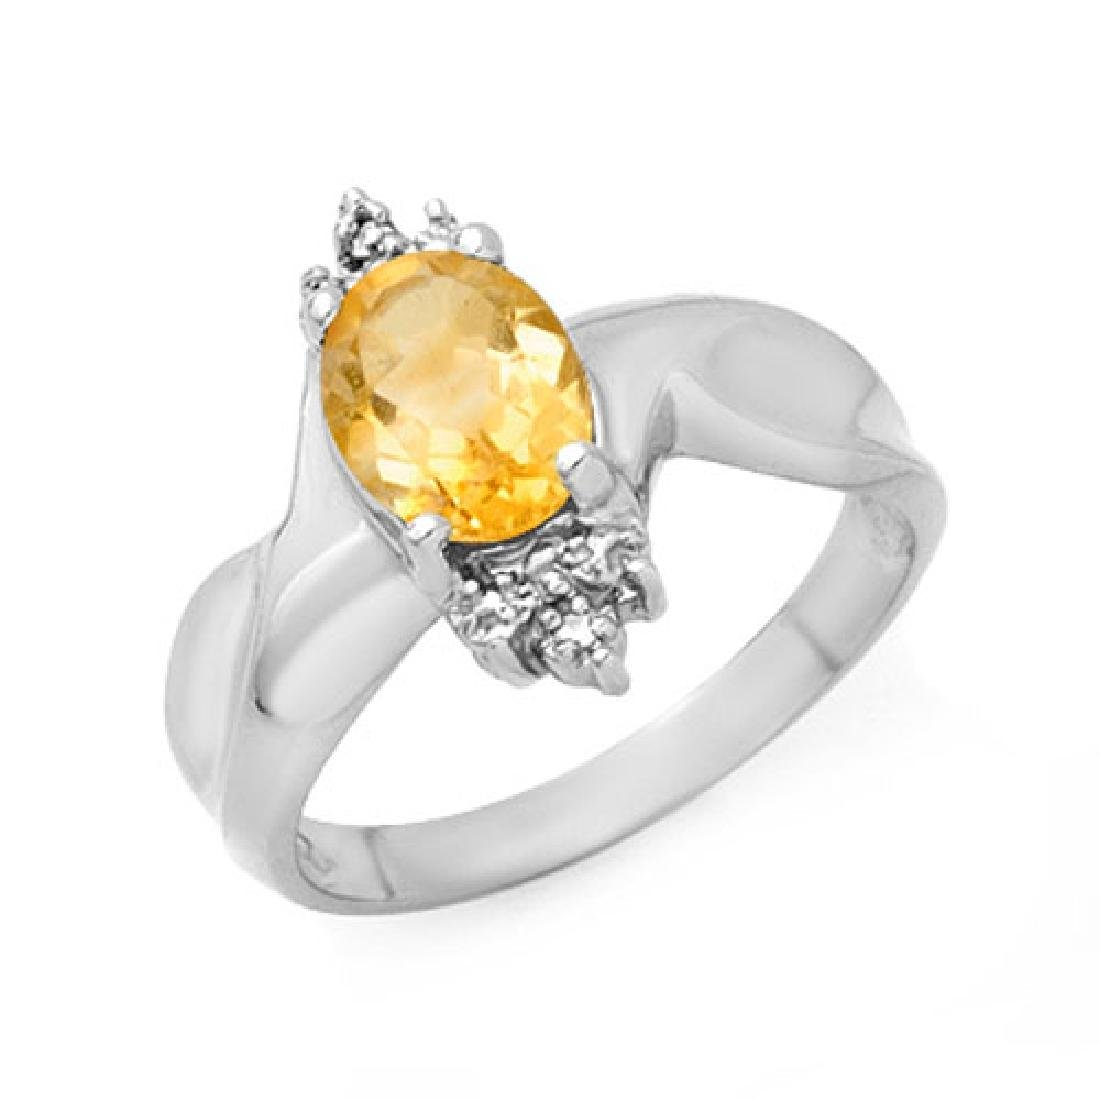 1.09 CTW Citrine & Diamond Ring 18K White Gold